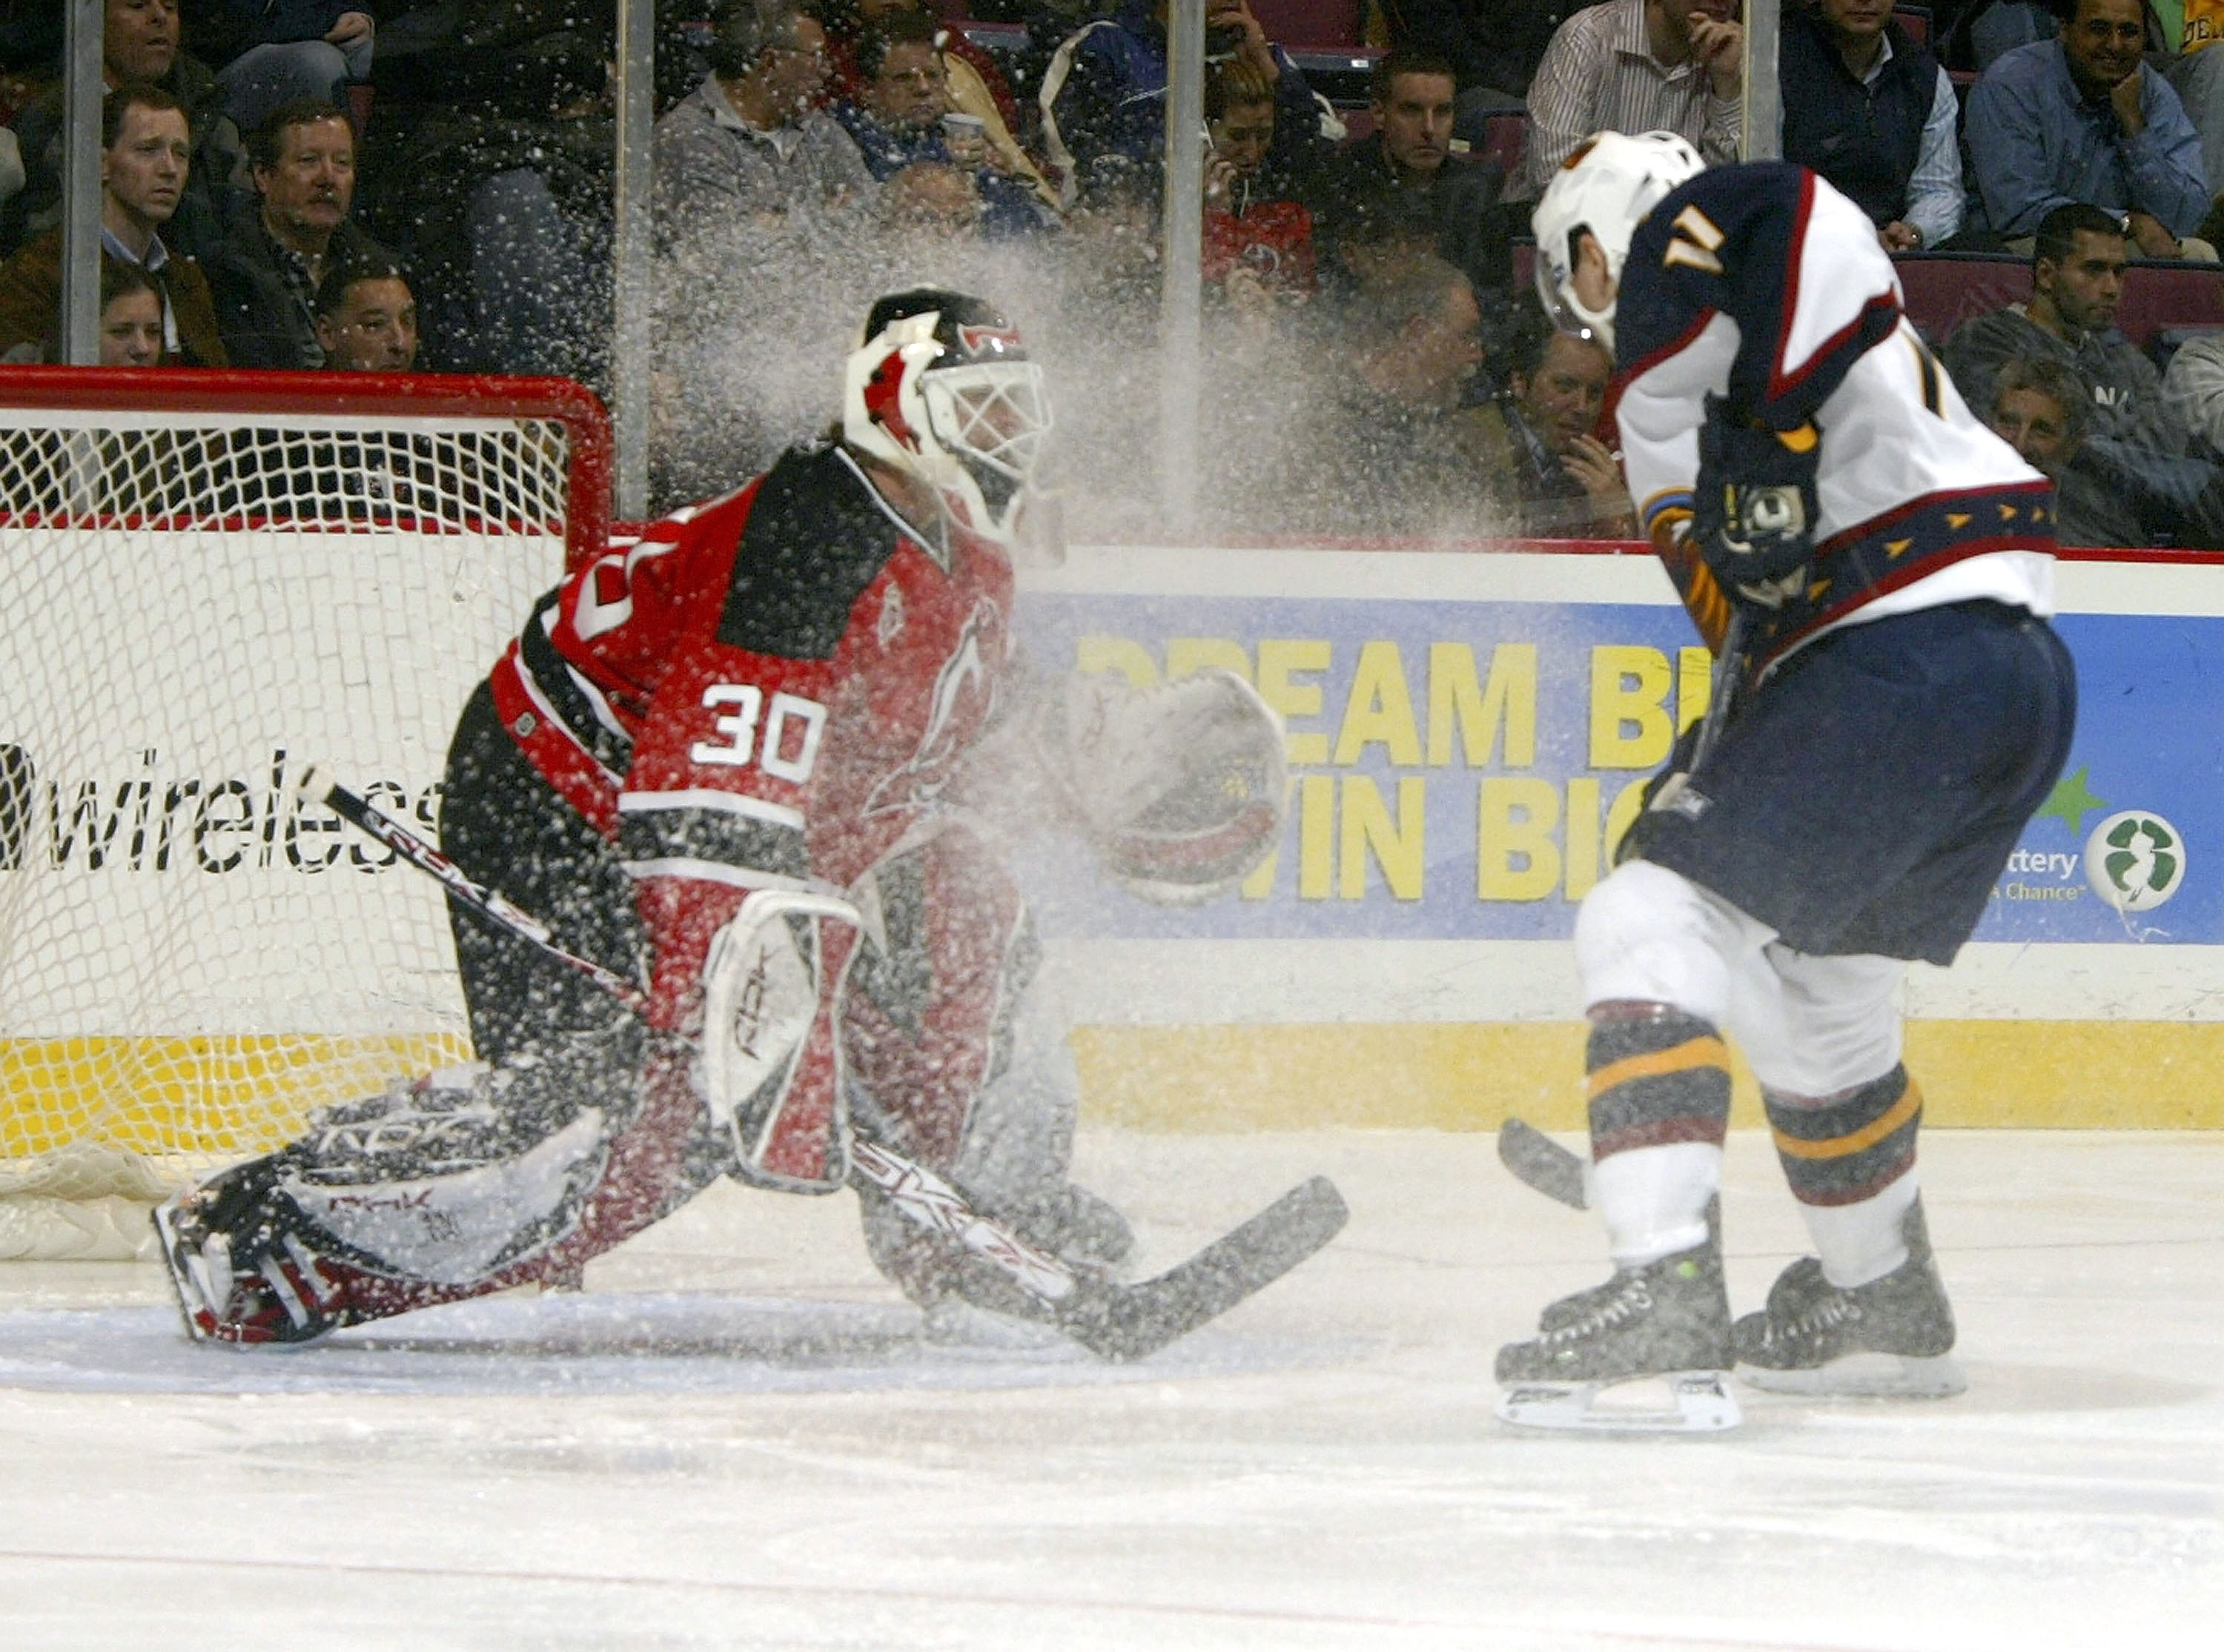 EAST RUTHERFORD, NJ - DECEMBER 19:  Goaltender Martin Broduer #30 of the New Jersey Devils  has ice kicked up into his face by J.P. Vigier #11 of the Atlanta Thrashers on December 19, 2006 at the Continental Airlines Arena in East Rutherford, New Jersey.